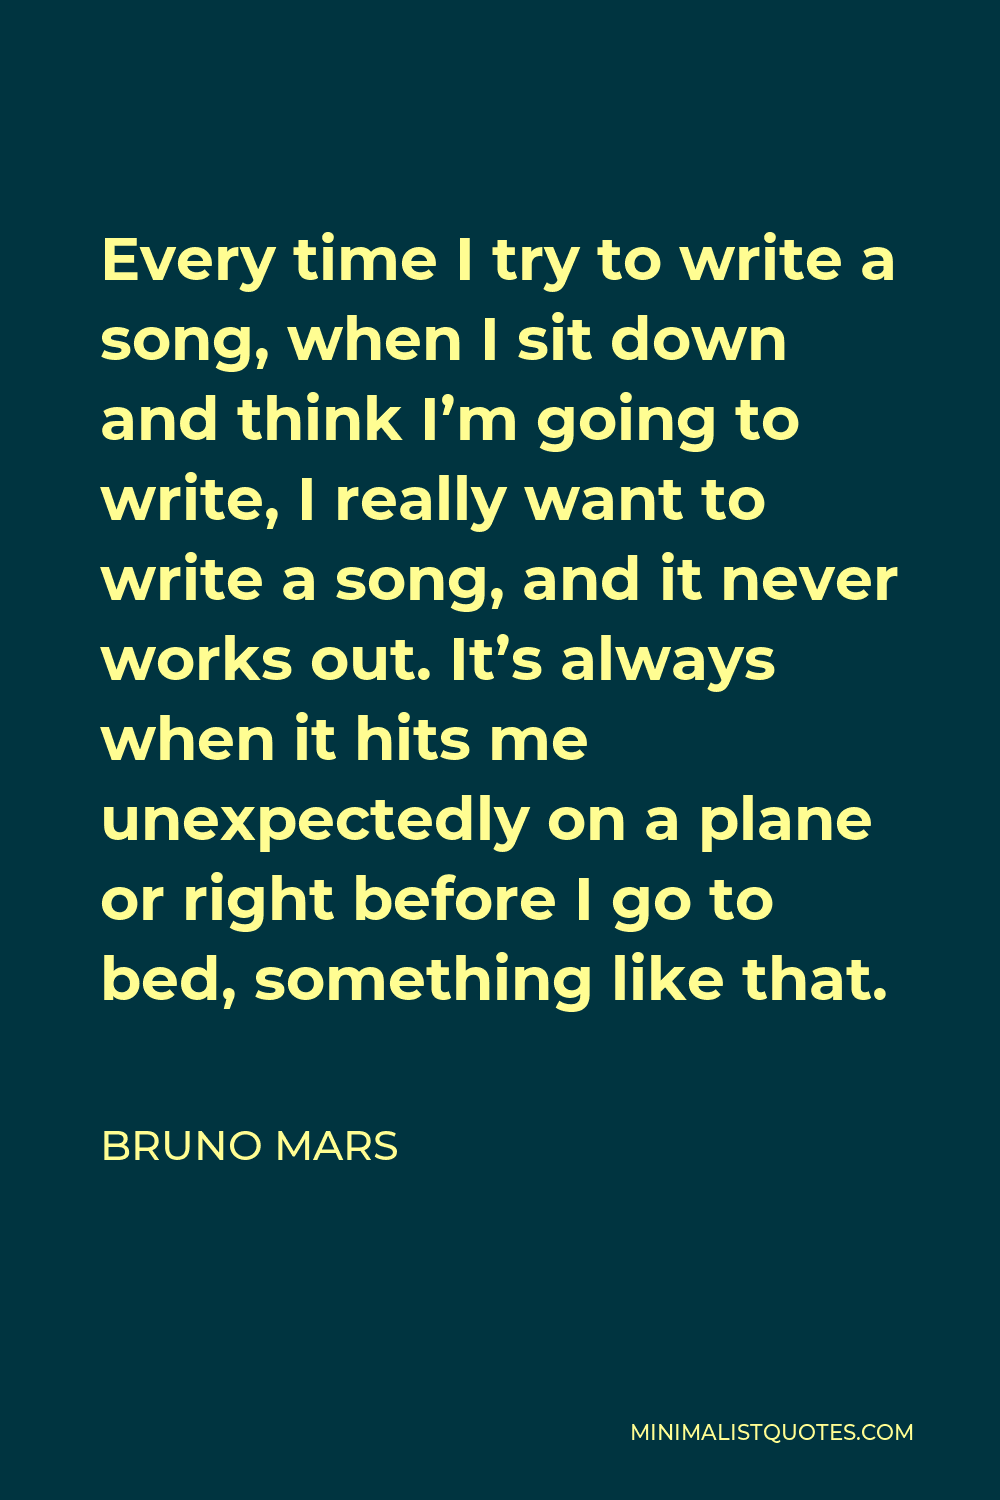 Bruno Mars Quote - Every time I try to write a song, when I sit down and think I'm going to write, I really want to write a song, and it never works out. It's always when it hits me unexpectedly on a plane or right before I go to bed, something like that.